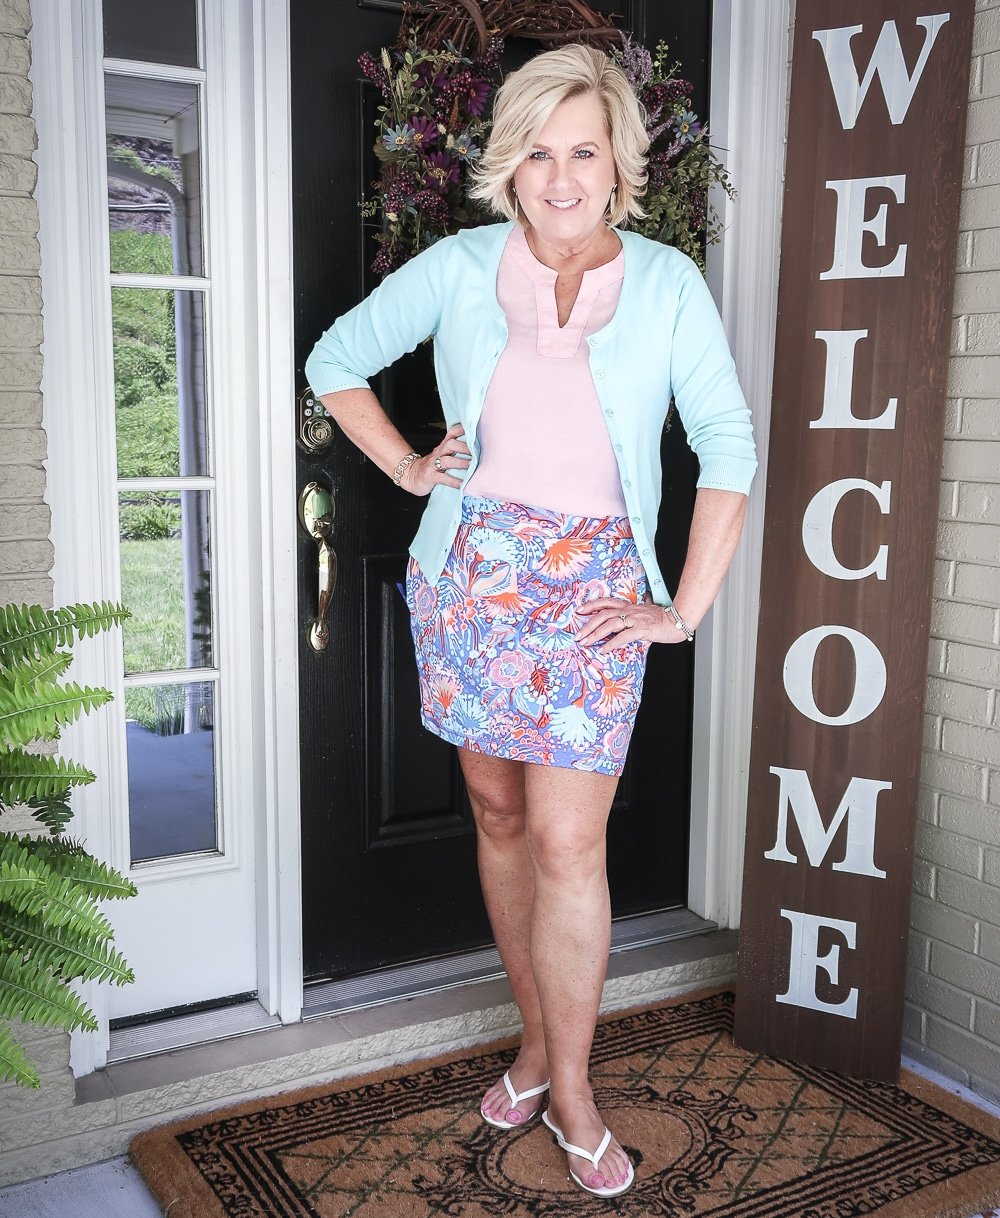 Fashion Blogger 50 Is Not Old is wearing a pale linen v neck top, an aqua colored cardigan, and a colorful skort